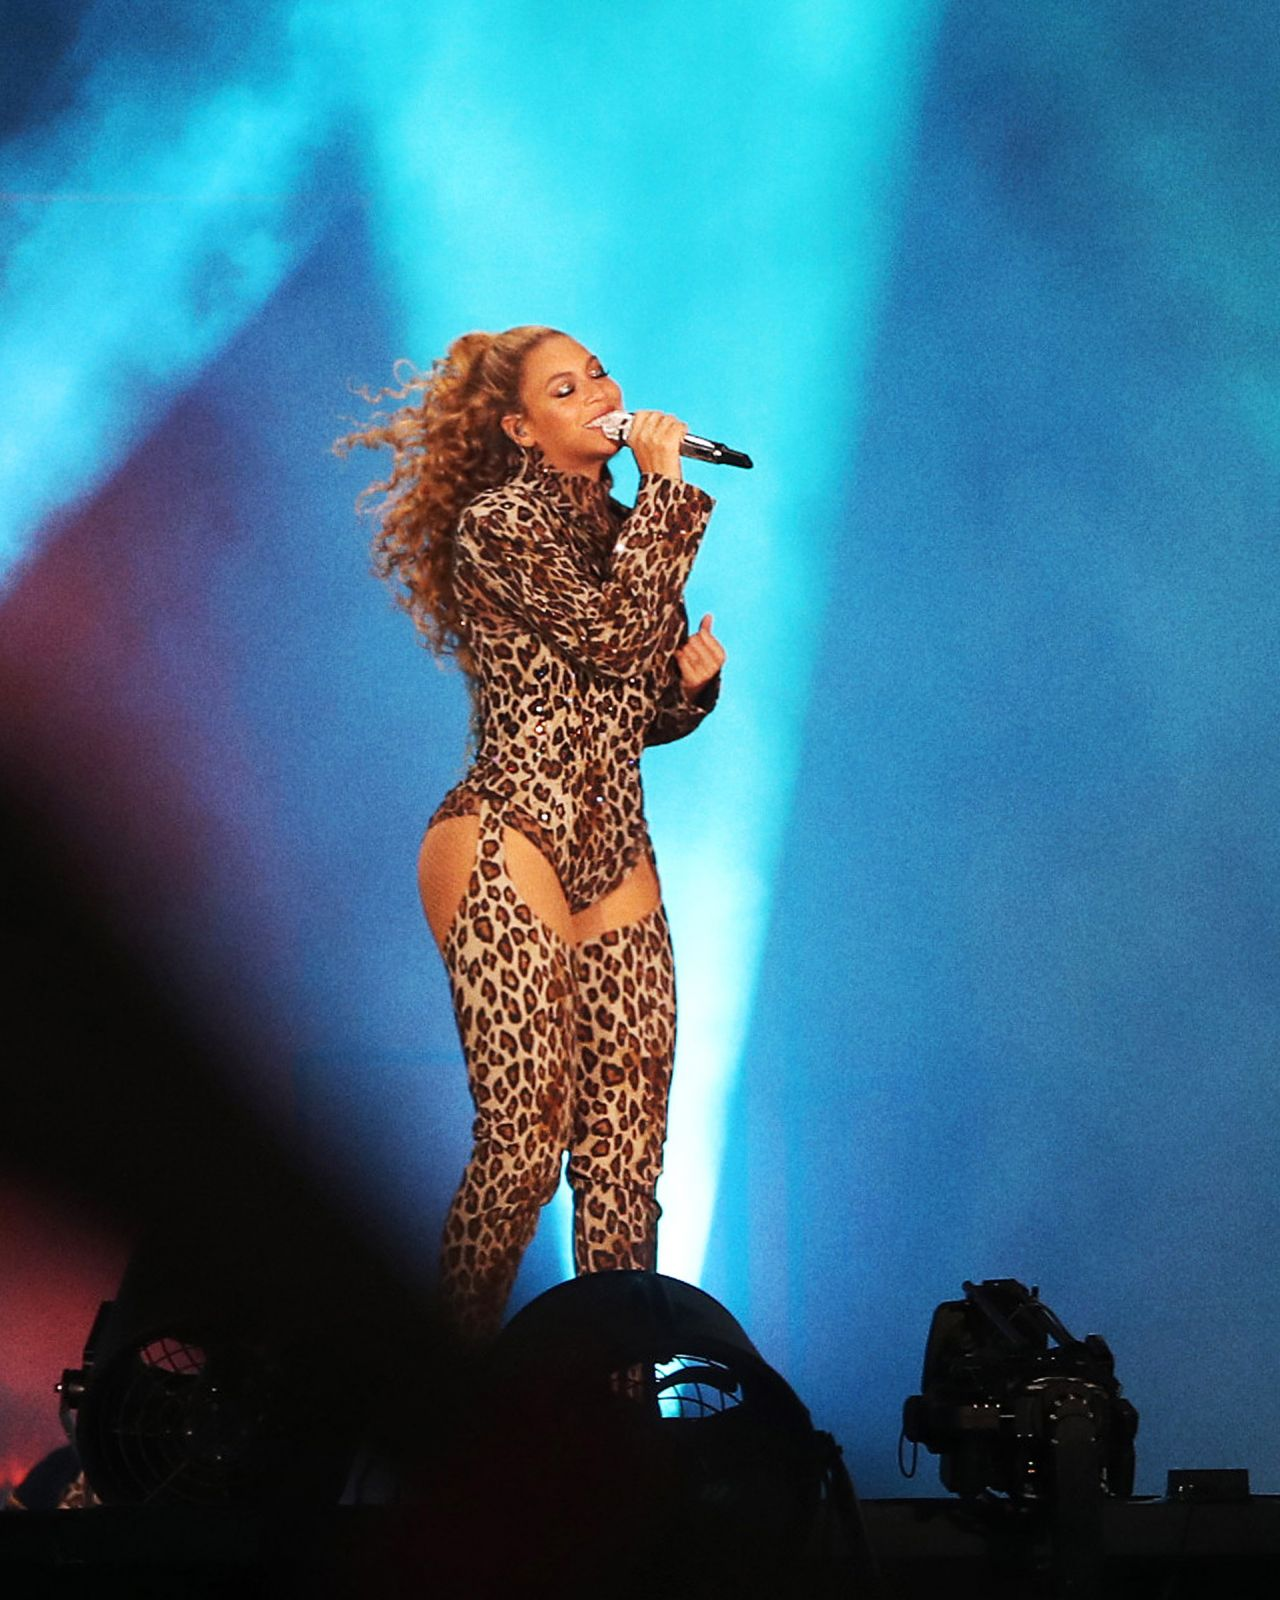 Jay Z And Beyonce Video On Tour